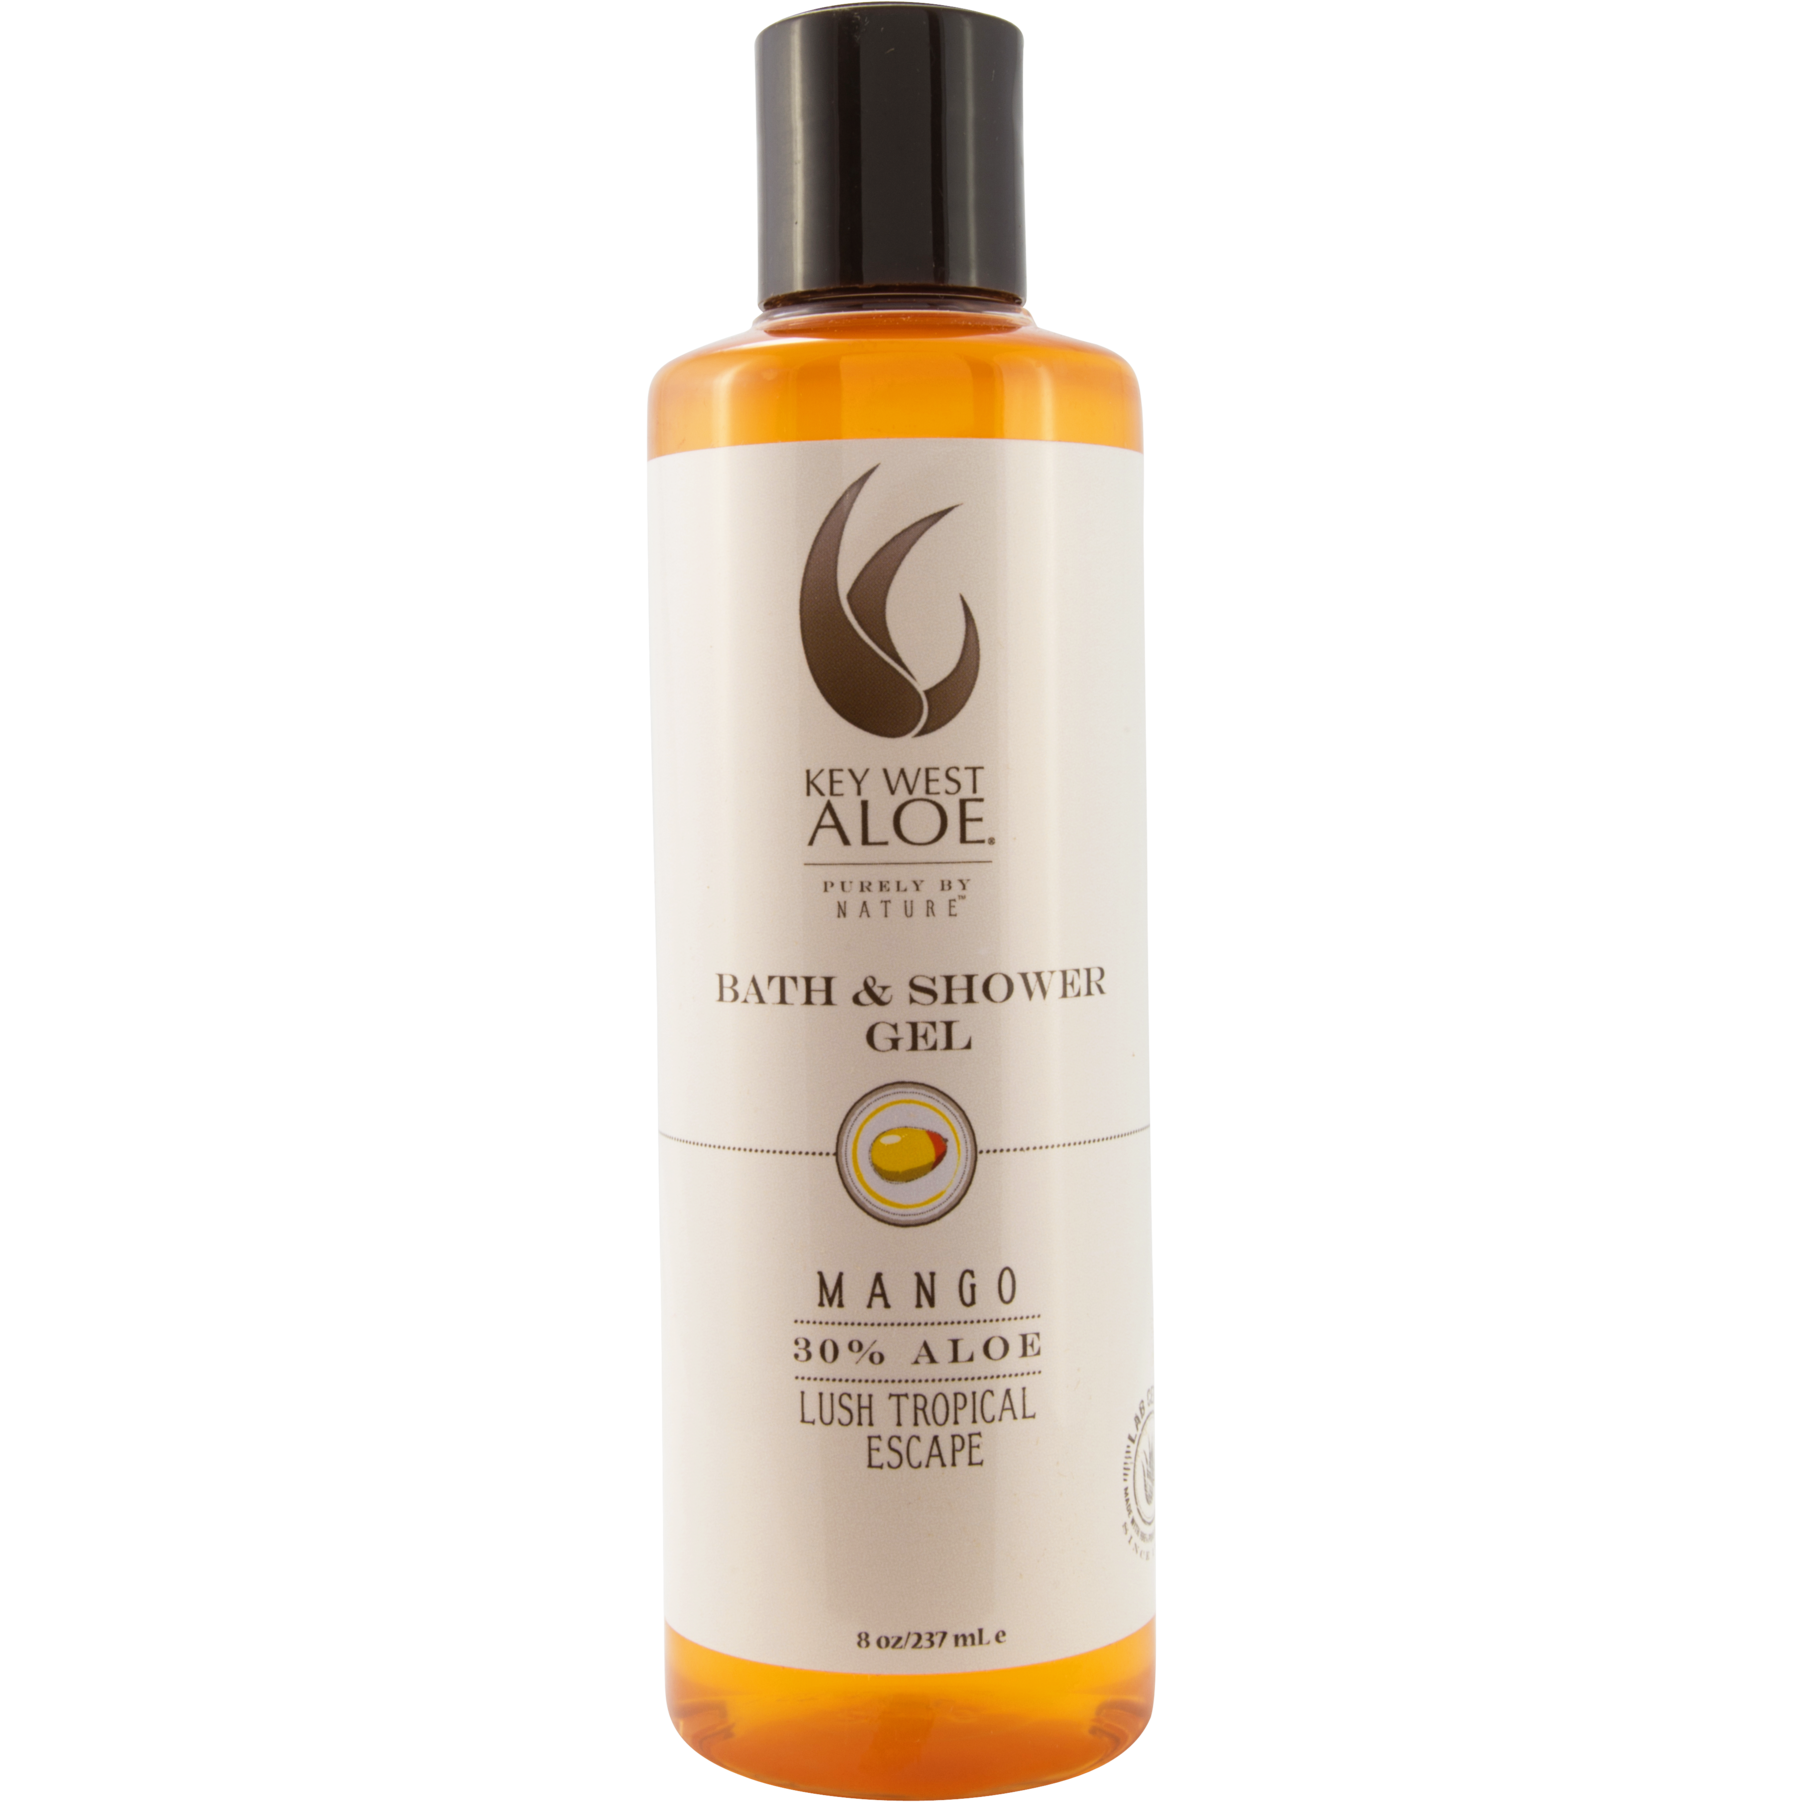 KEY WEST ALOE MANGO BATH and SHOWER GEL